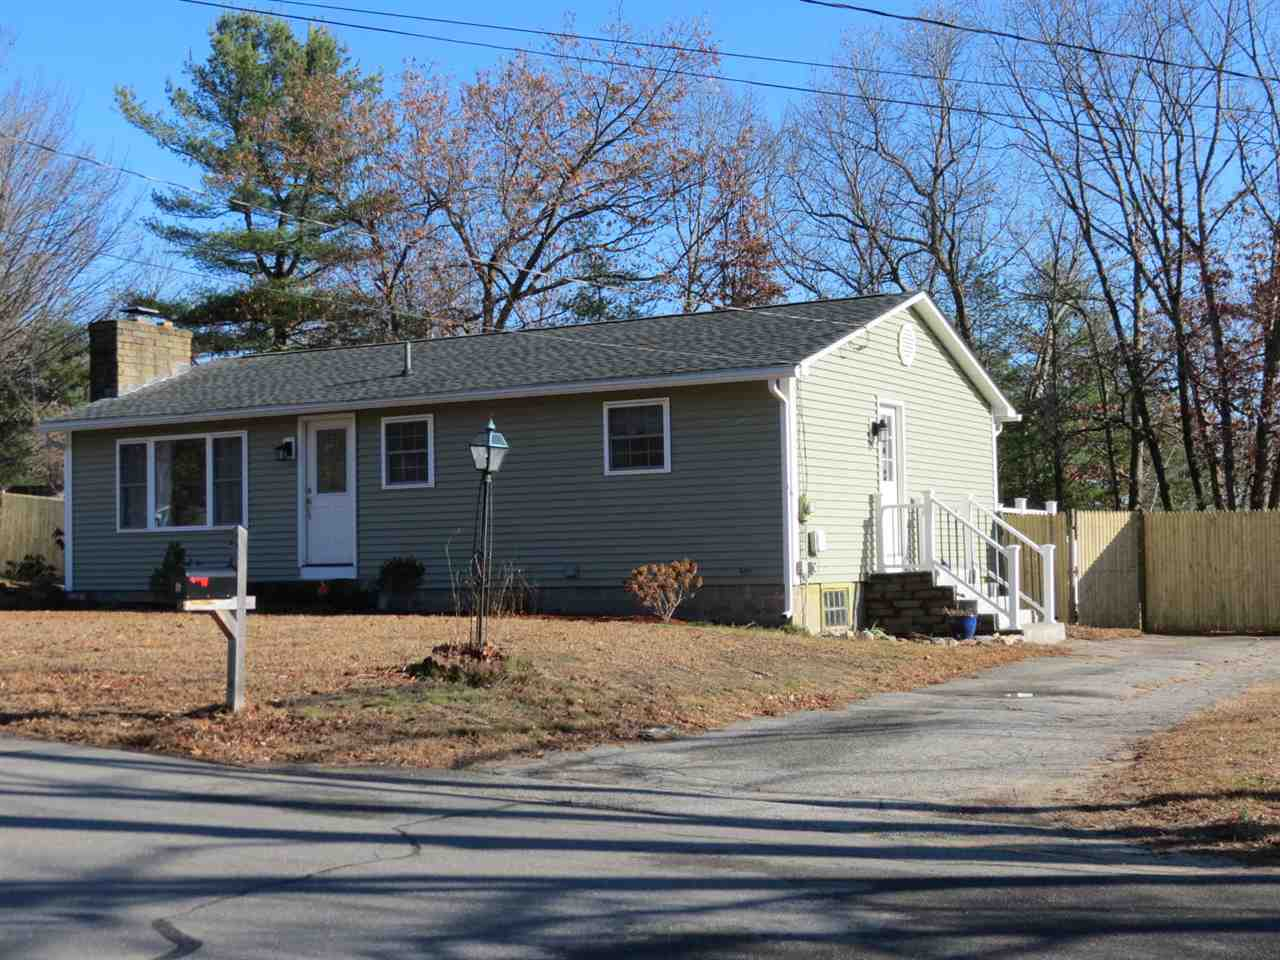 MLS 4786076: 6 Oak Street, Merrimack NH